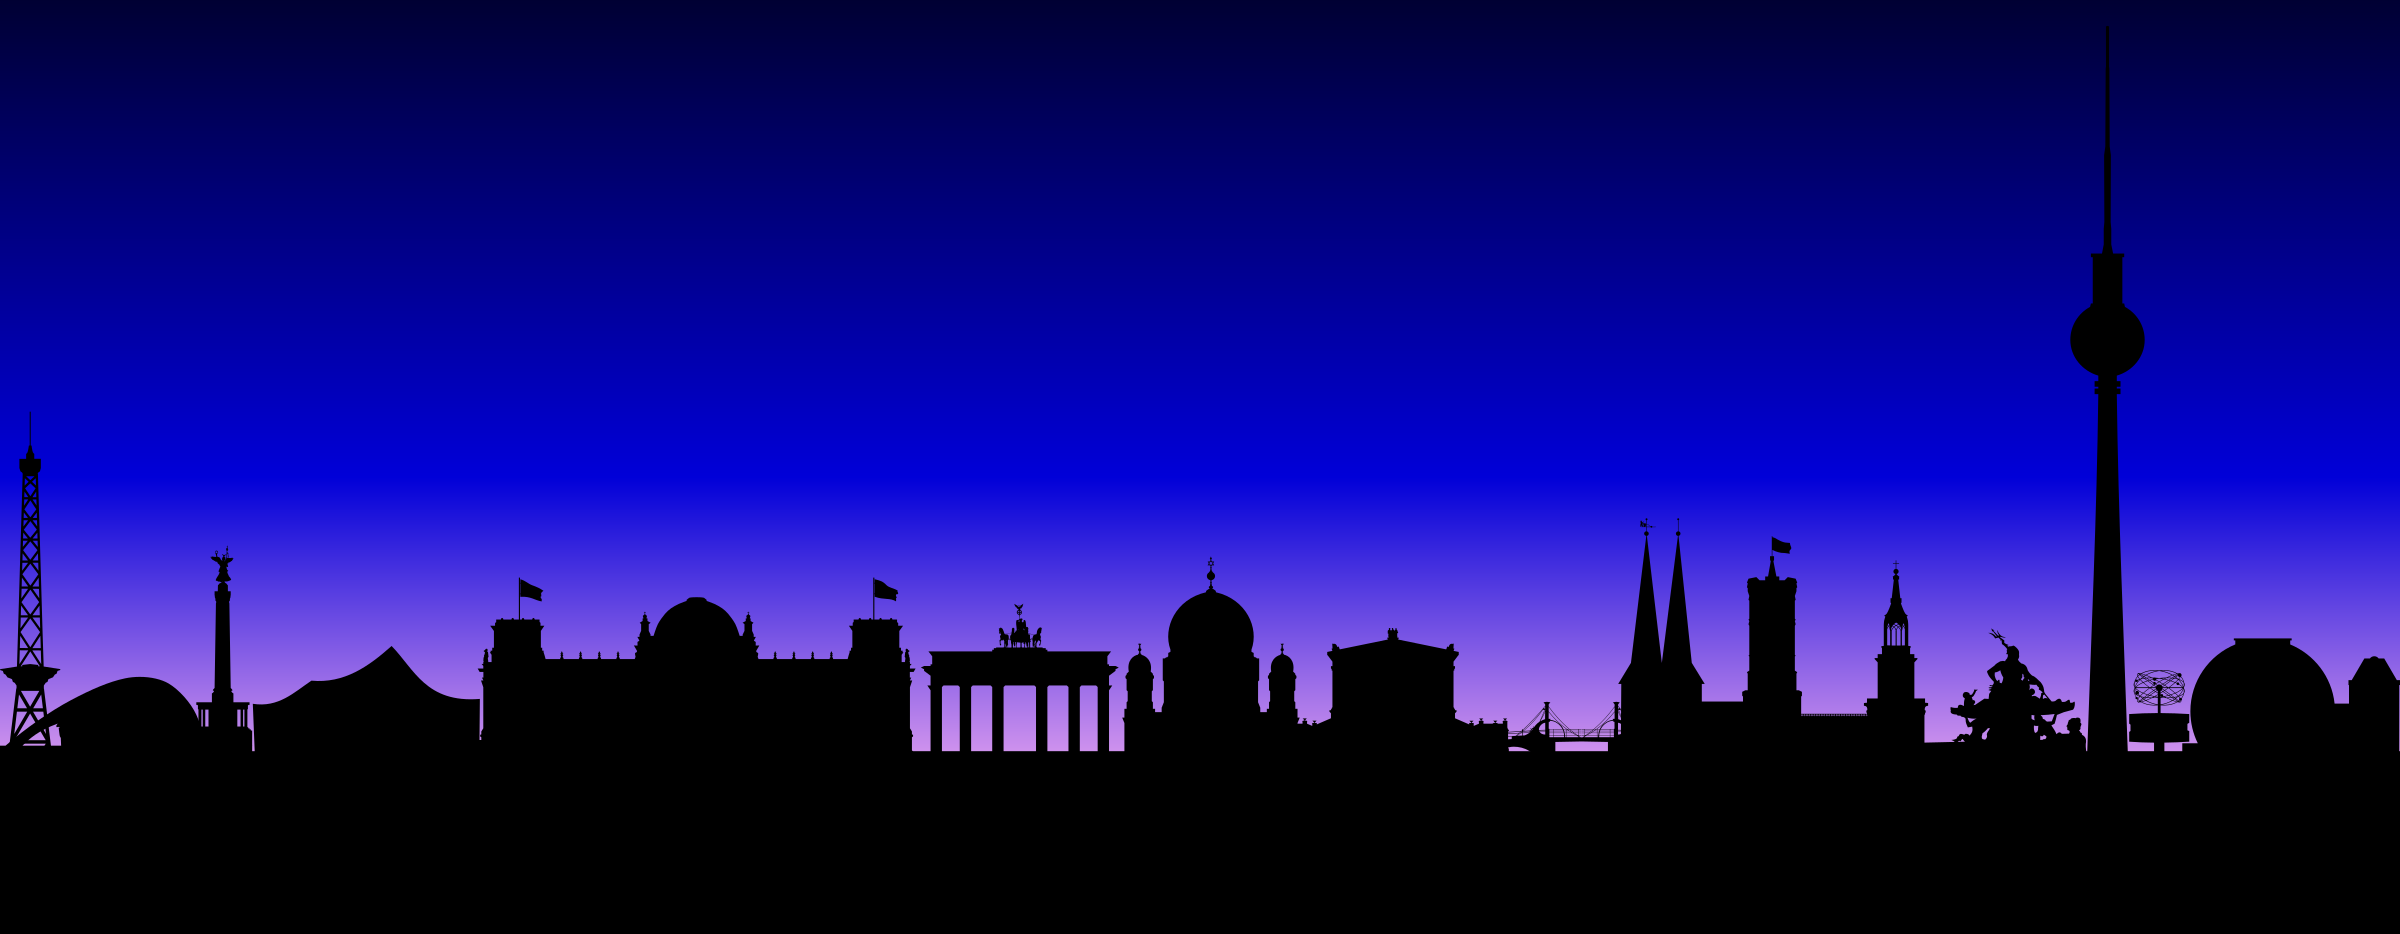 Berlin Skyline by wasat